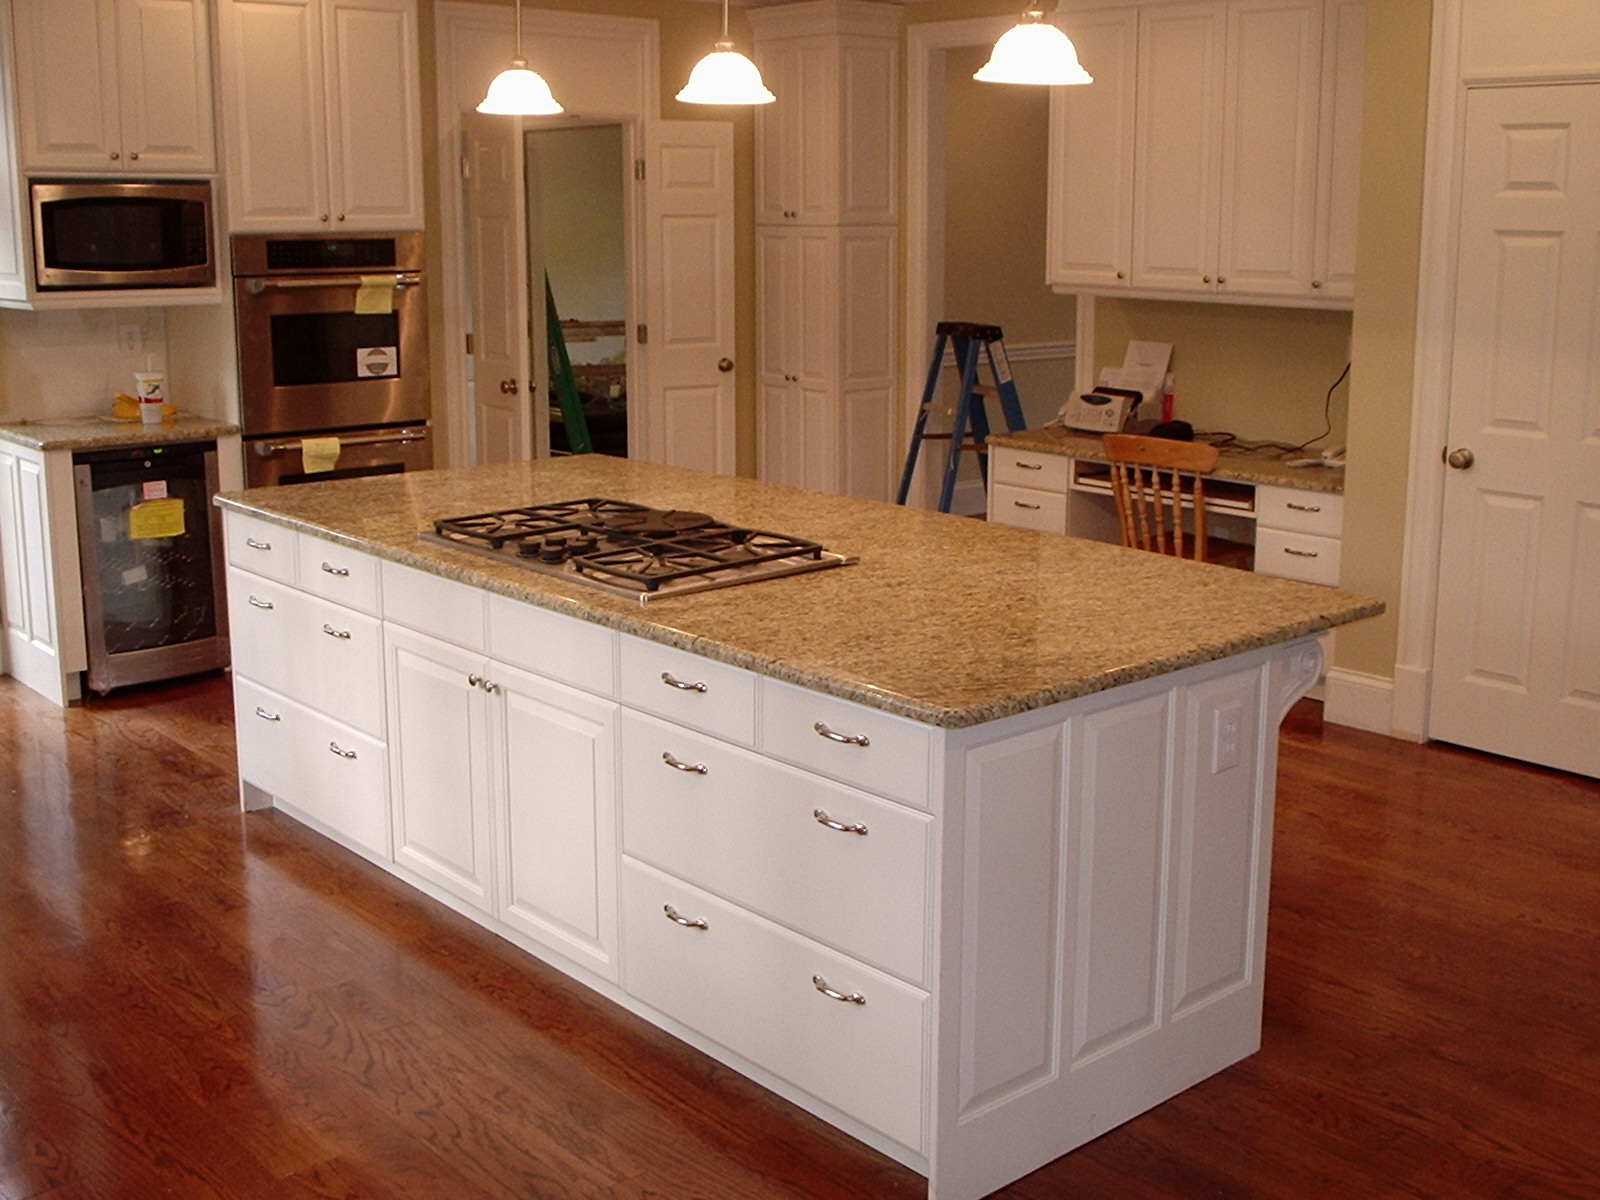 Kitchen cabinet plans dream house experience for Kitchen cupboard units